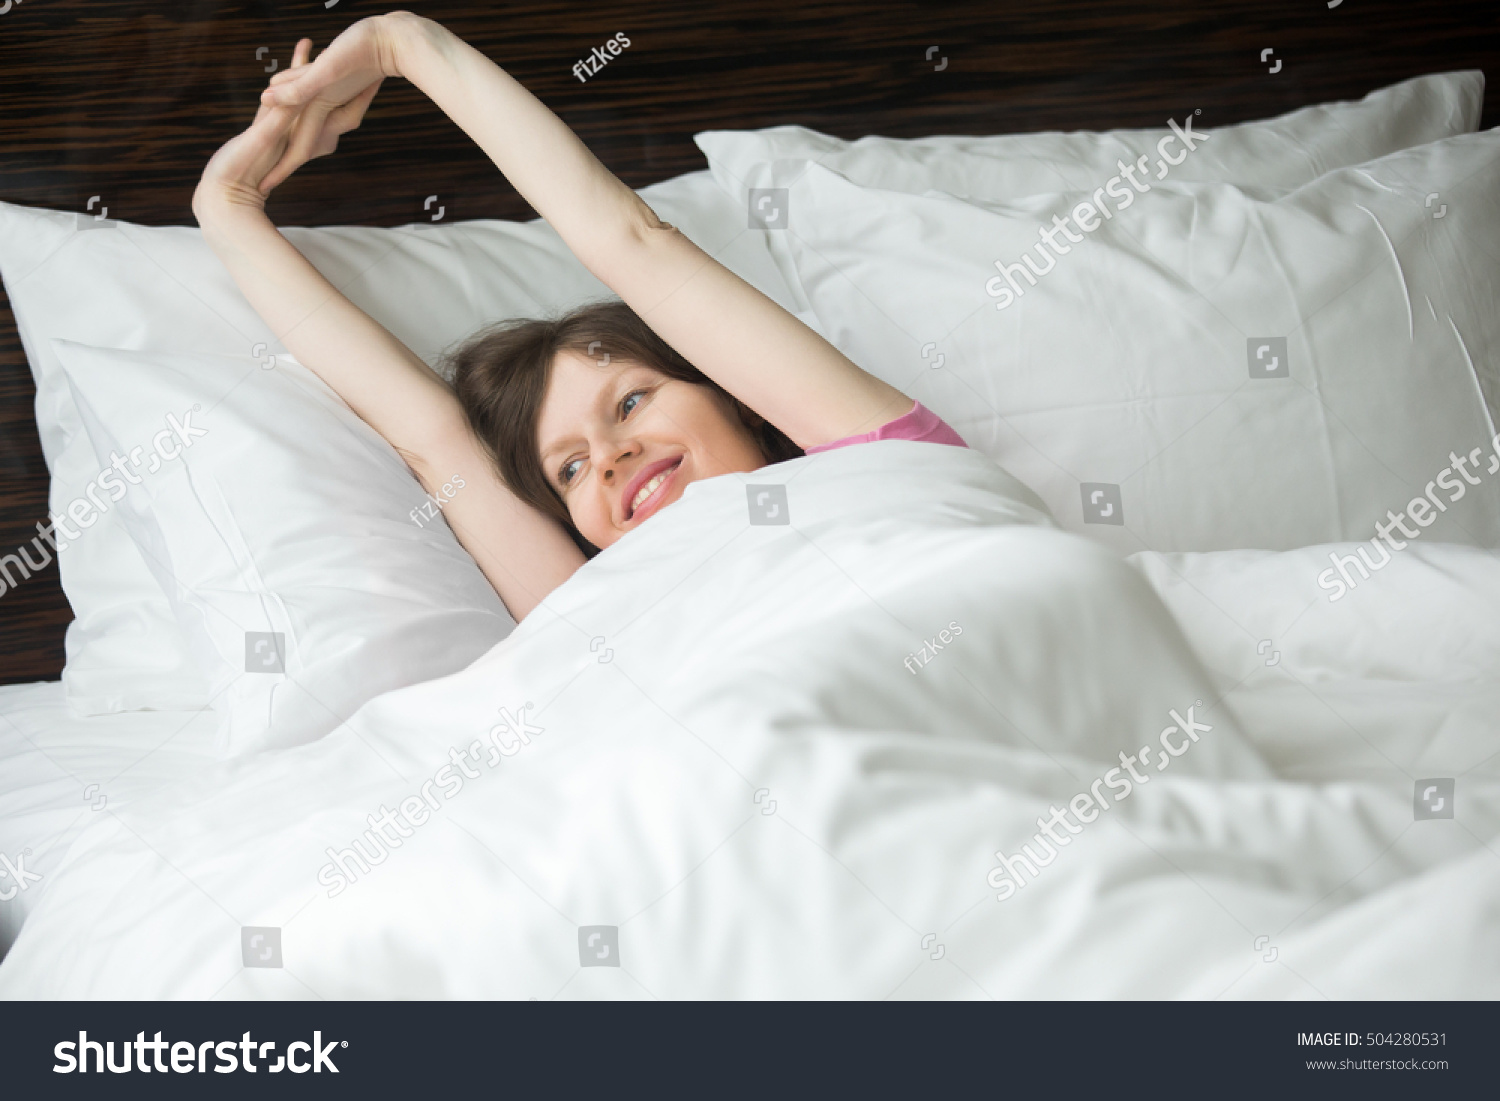 Portrait Of Happy Young Woman Lying In Bed After Waking Up And Stretching  After Good Night